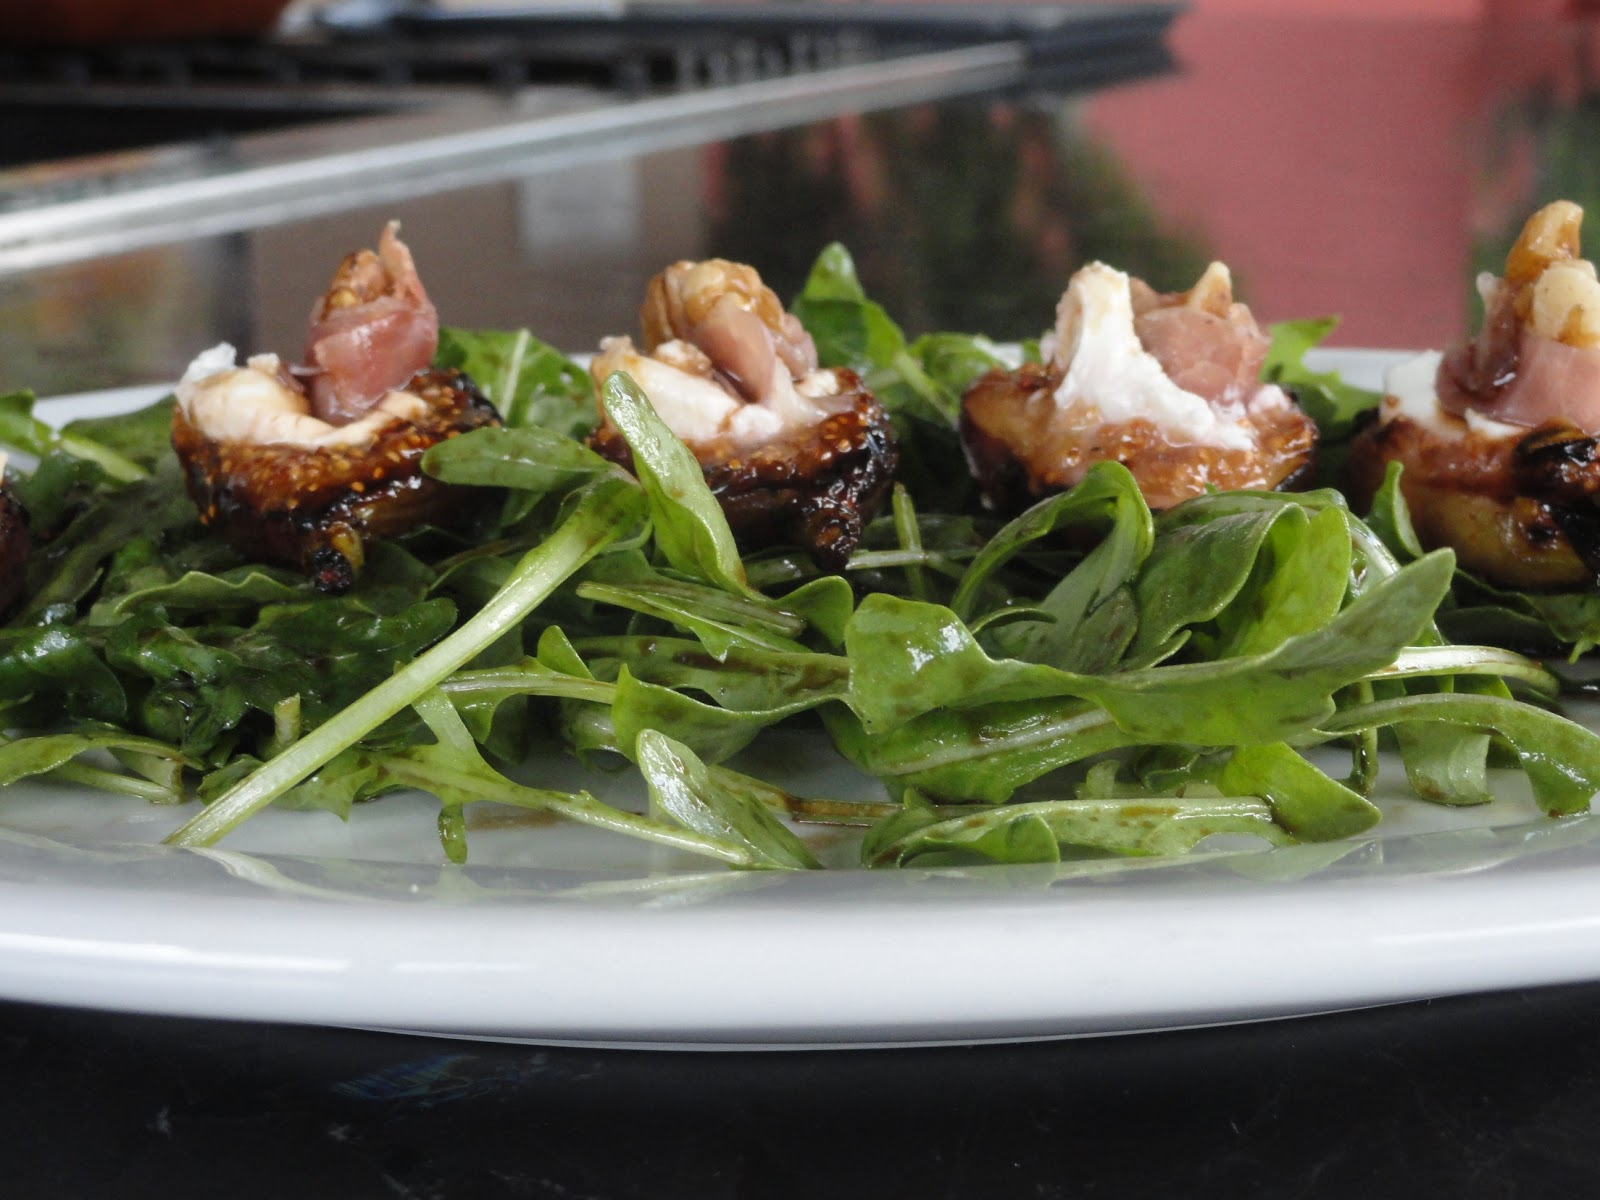 Next shegrilled the figs and stuffed them with goat cheese, walnuts ...